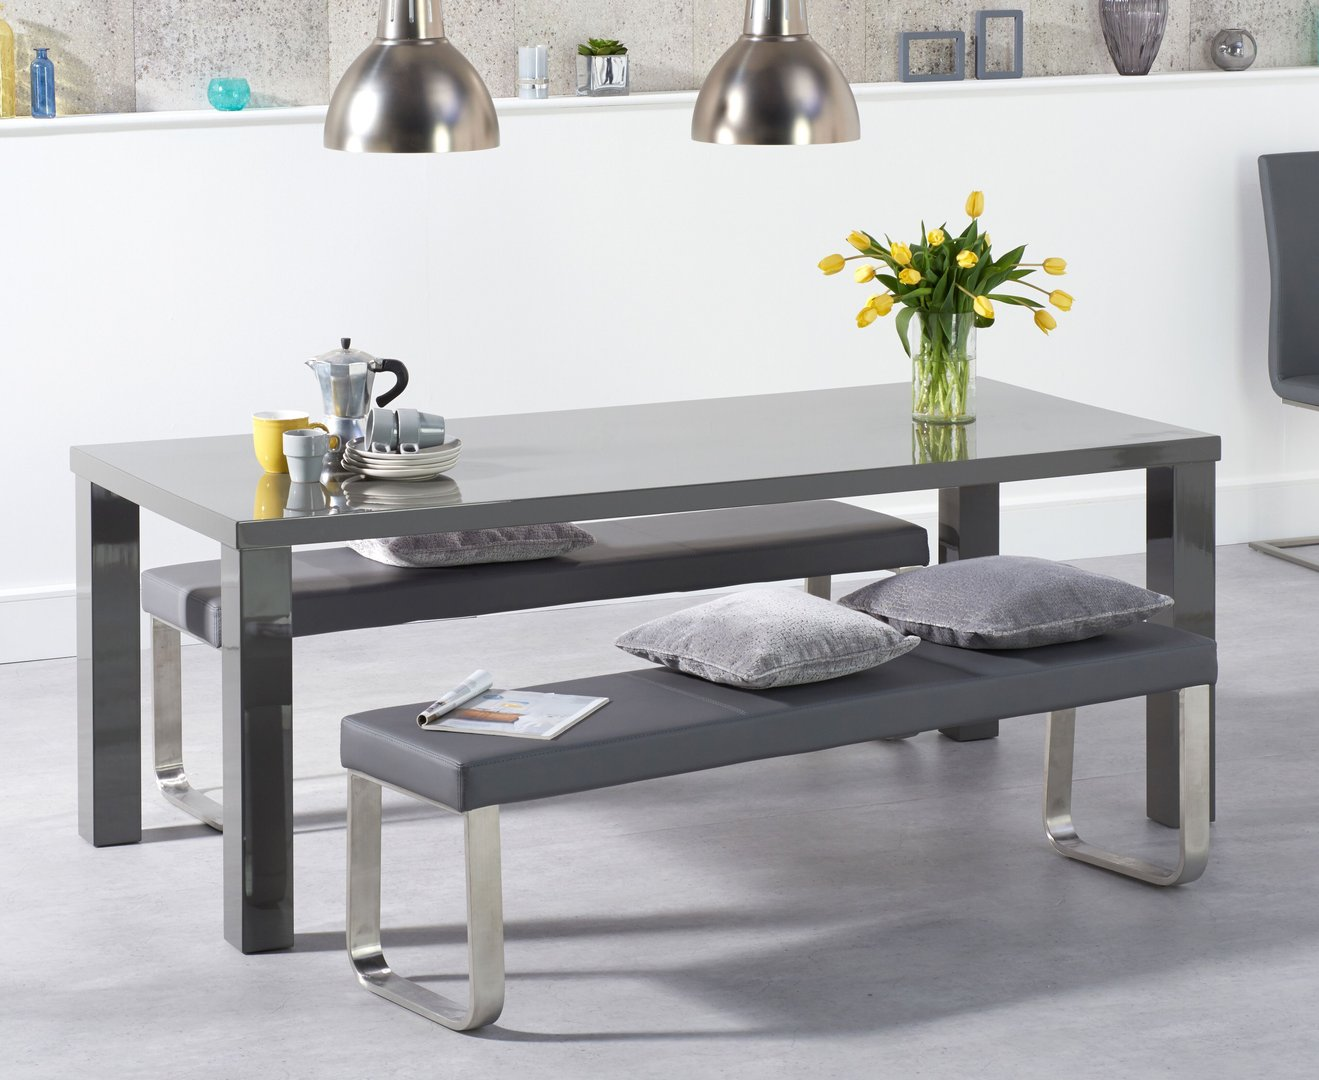 Marvelous Dark Grey High Gloss 6 Seater Dining Table Bench Set Alphanode Cool Chair Designs And Ideas Alphanodeonline